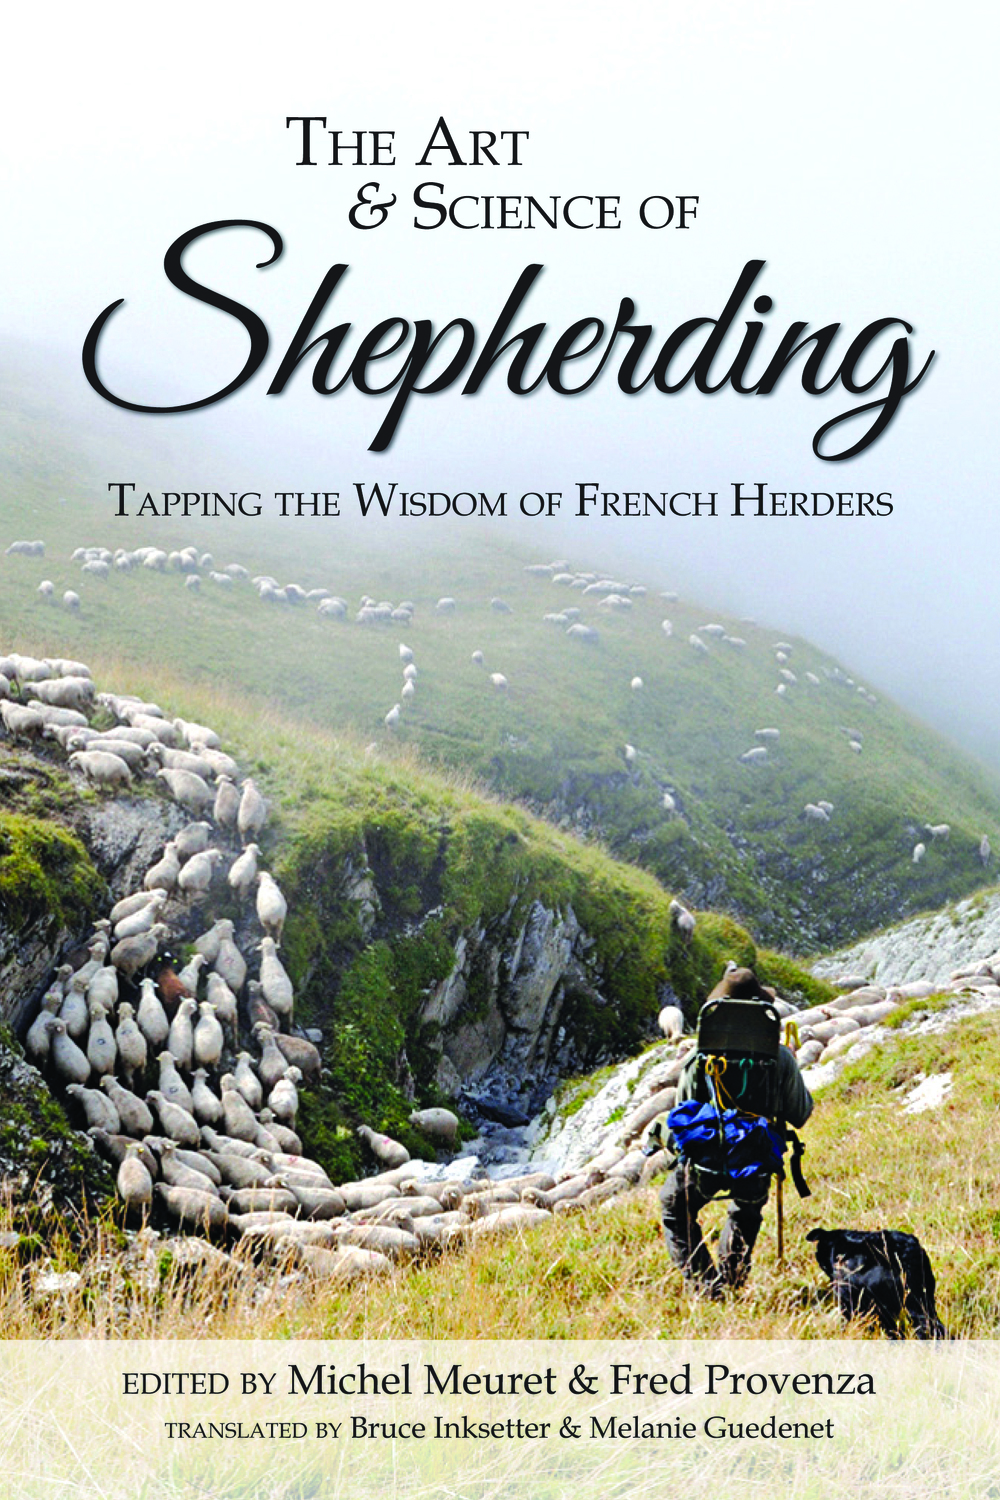 Michel and Fred's book. It's both a practical guide to the concepts of shepherding and also a valuable resource about the science of grazing.